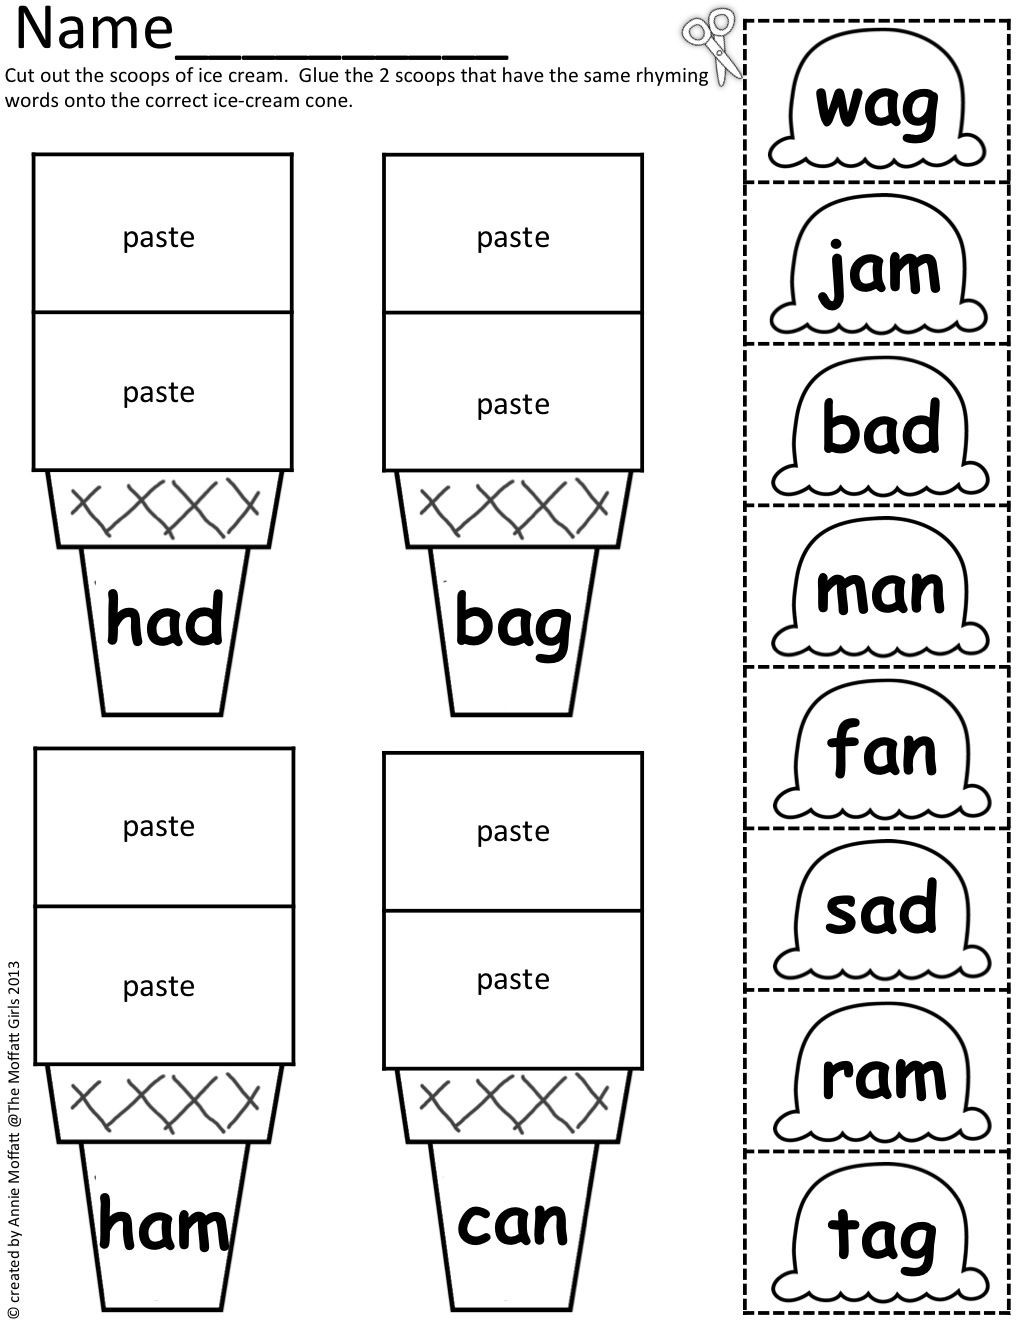 Rhyming Worksheets for Preschool Worksheet Puter Activities for Kids Learning Games 5th